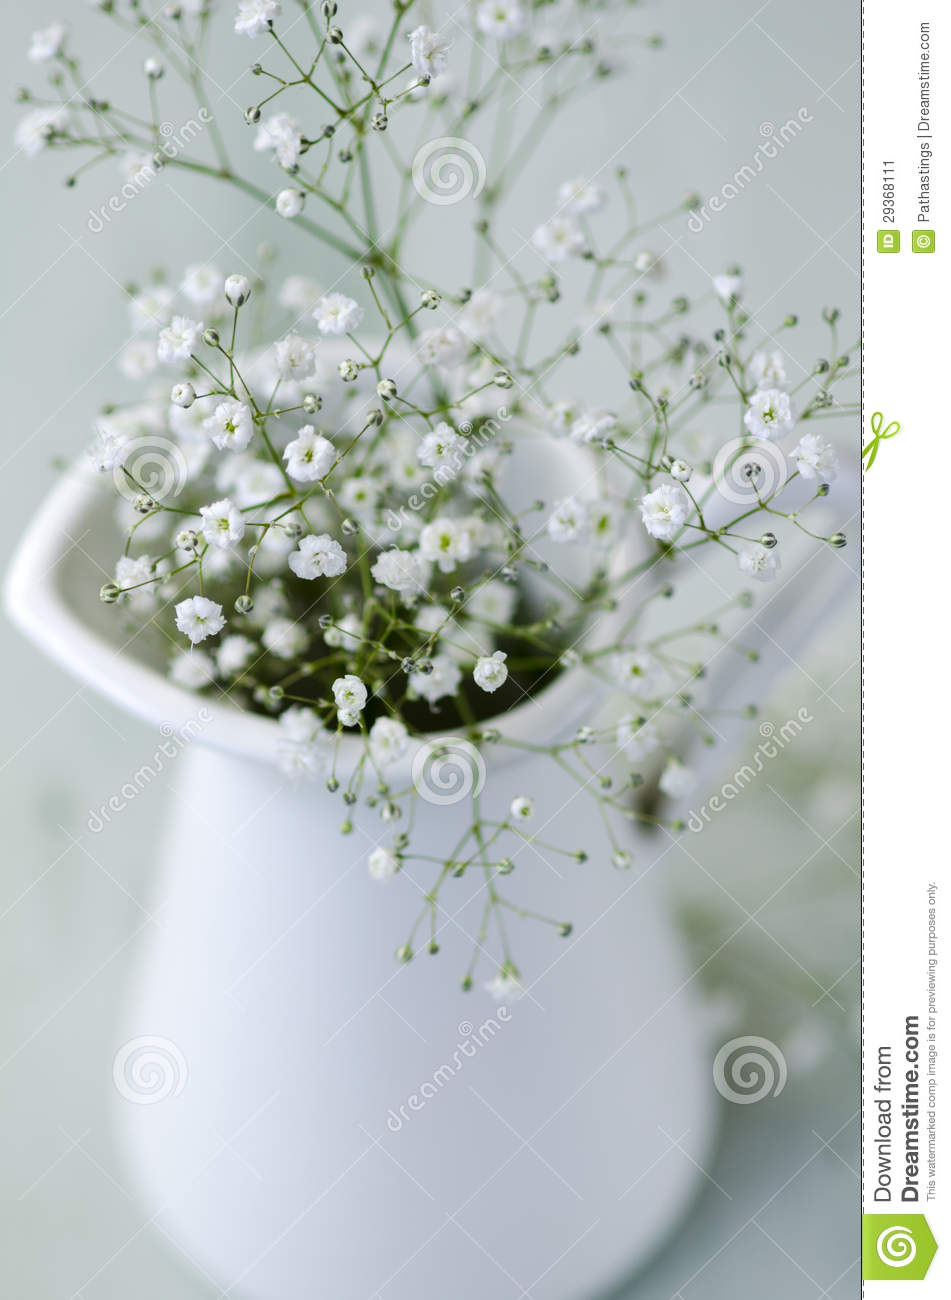 https://thumbs.dreamstime.com/z/baby-s-breath-flowers-arrangement-29368111.jpg